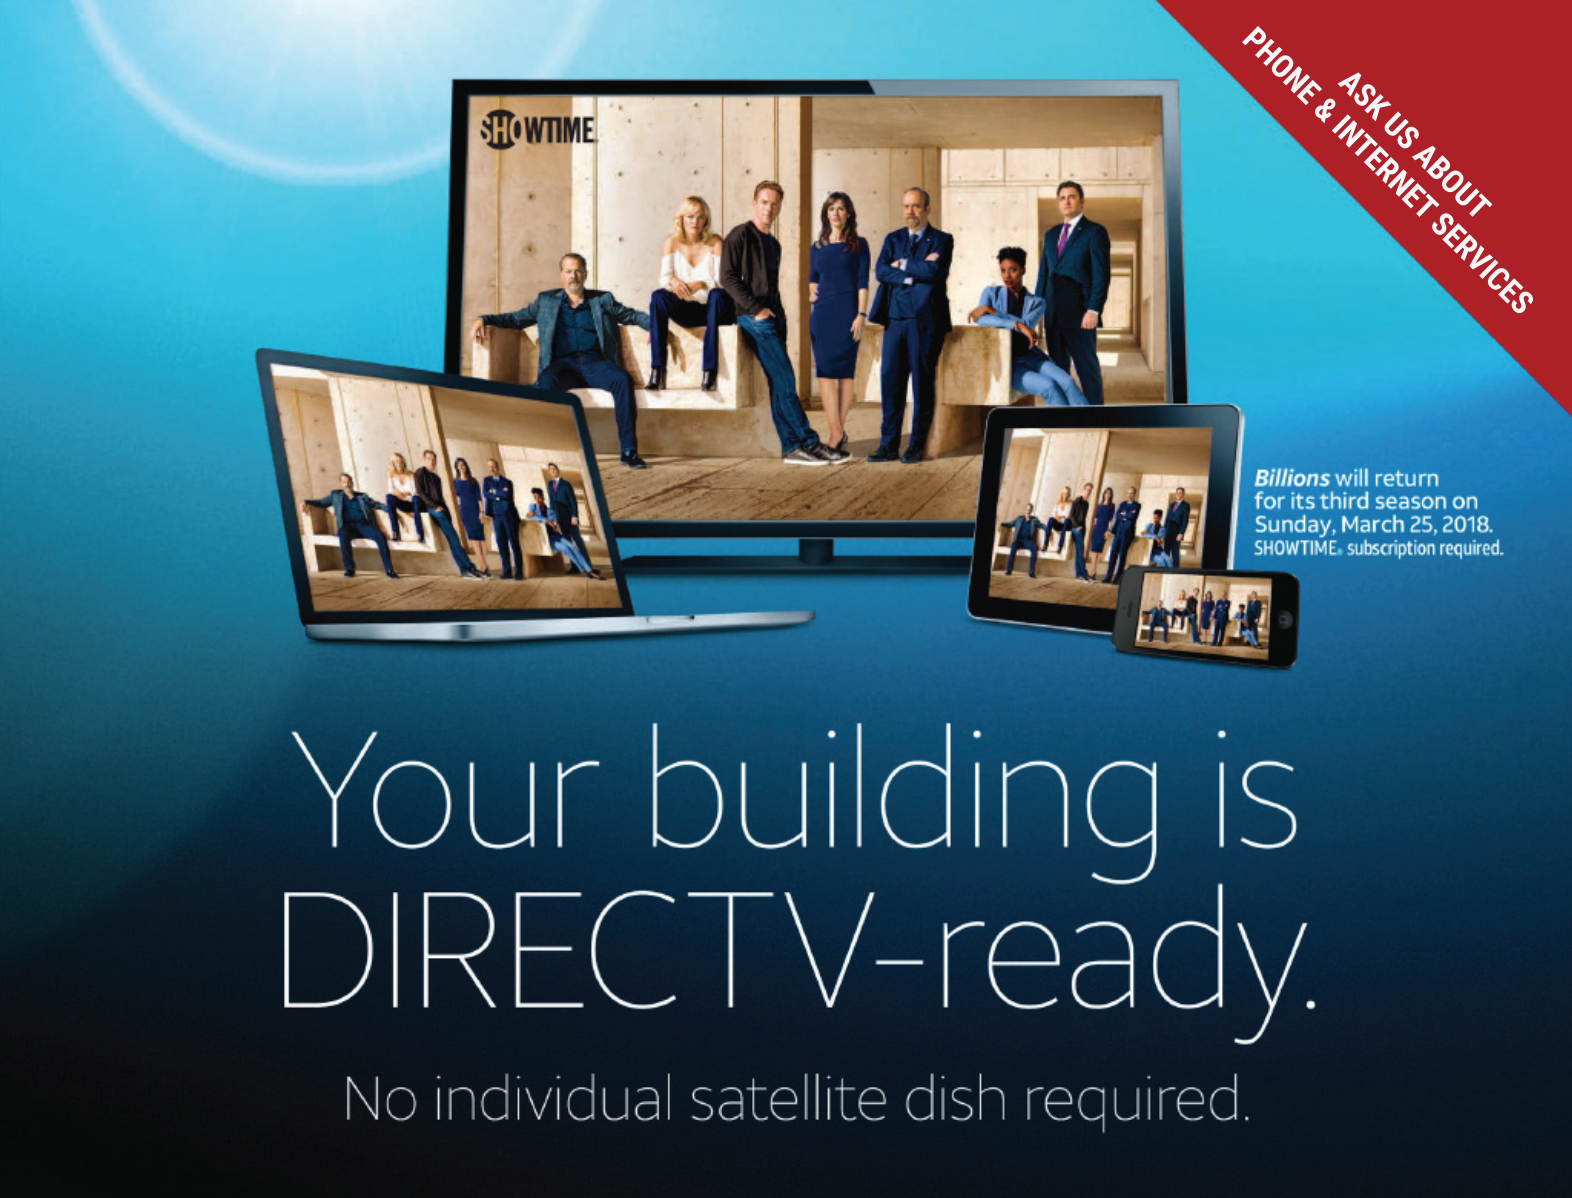 Your building is DIRECTV-ready